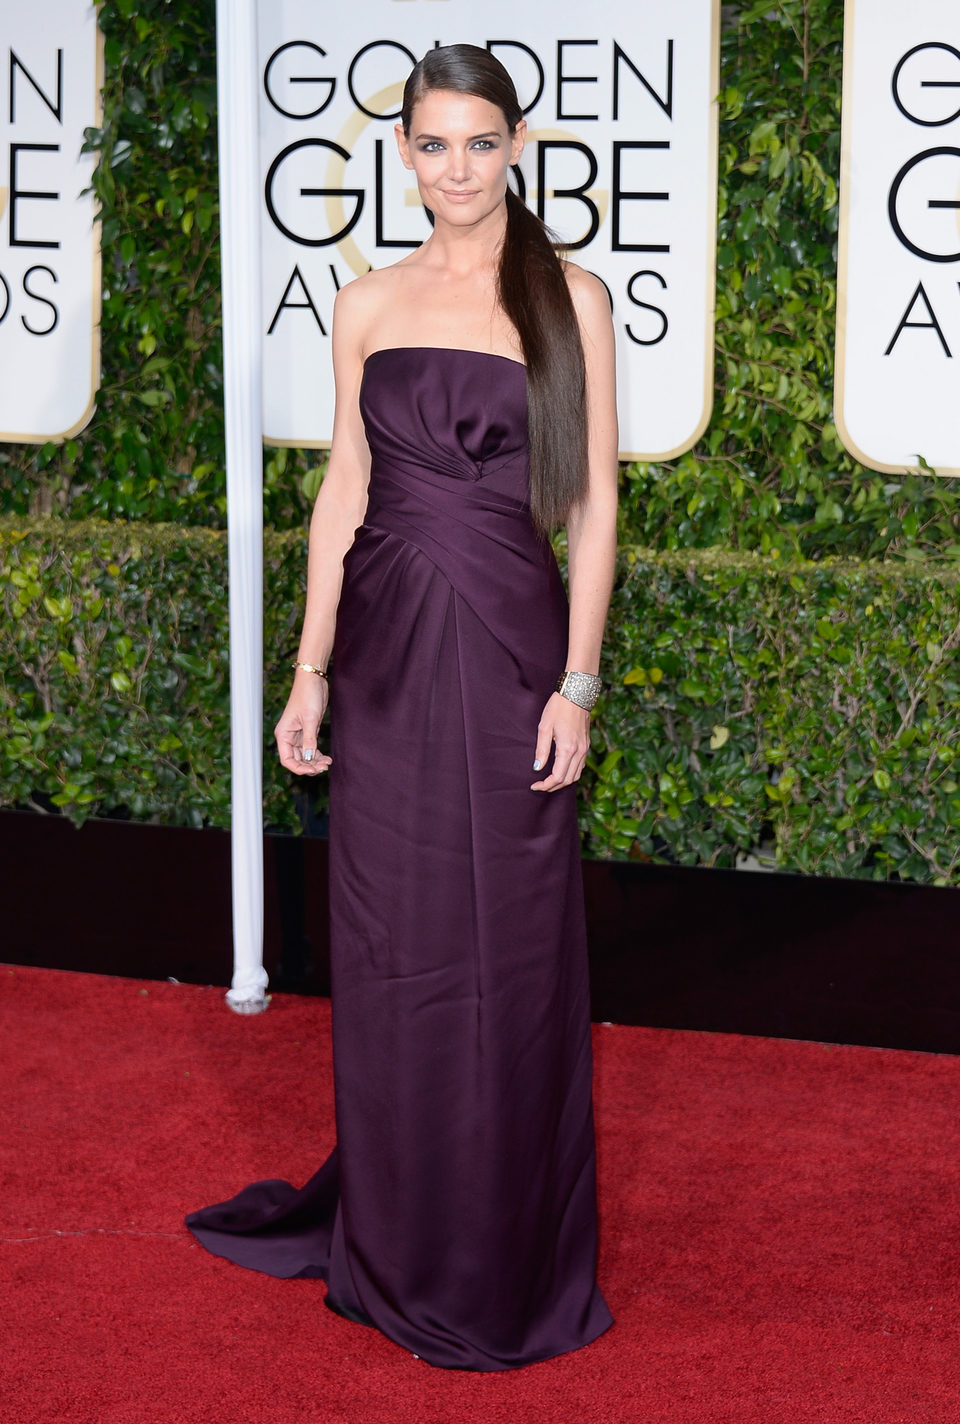 Katie Holmes at the Golden Globes 2015 red carpet